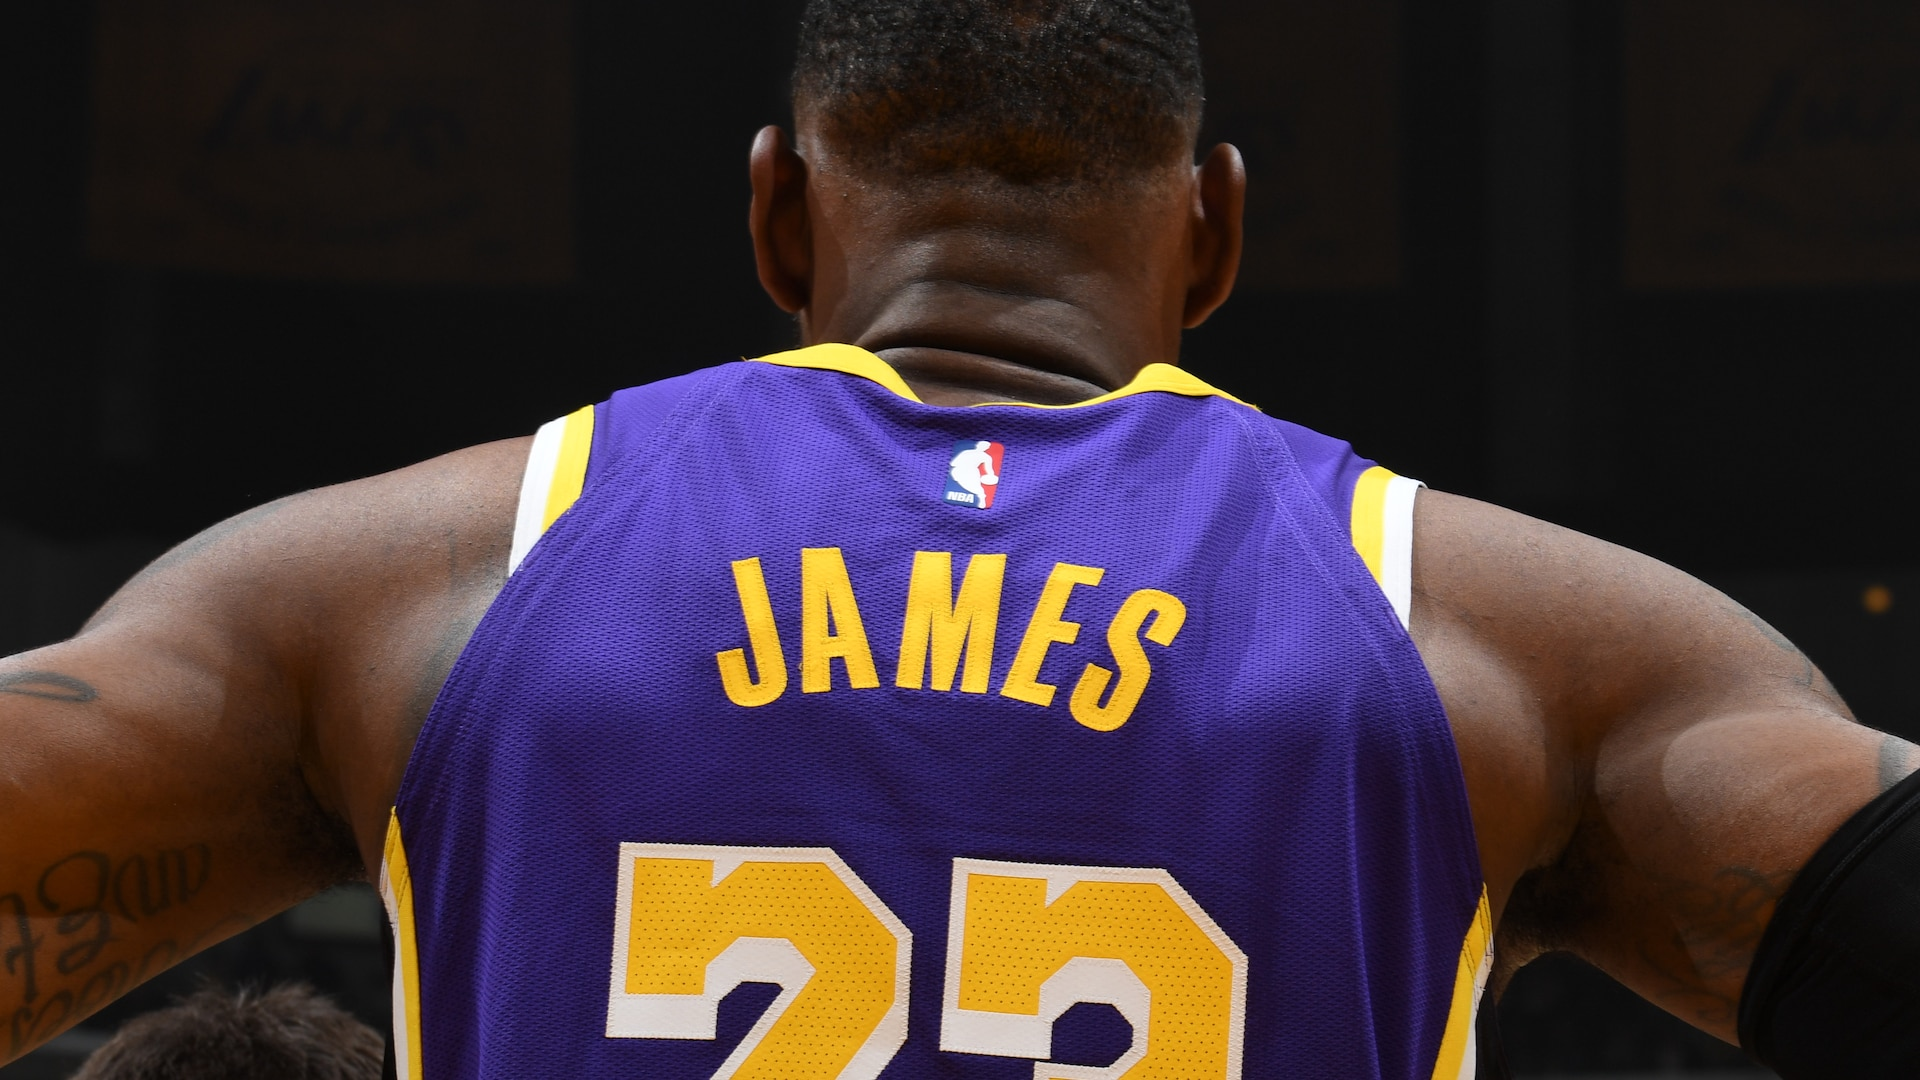 NBA, NBPA reportedly approve social justice messages on jerseys